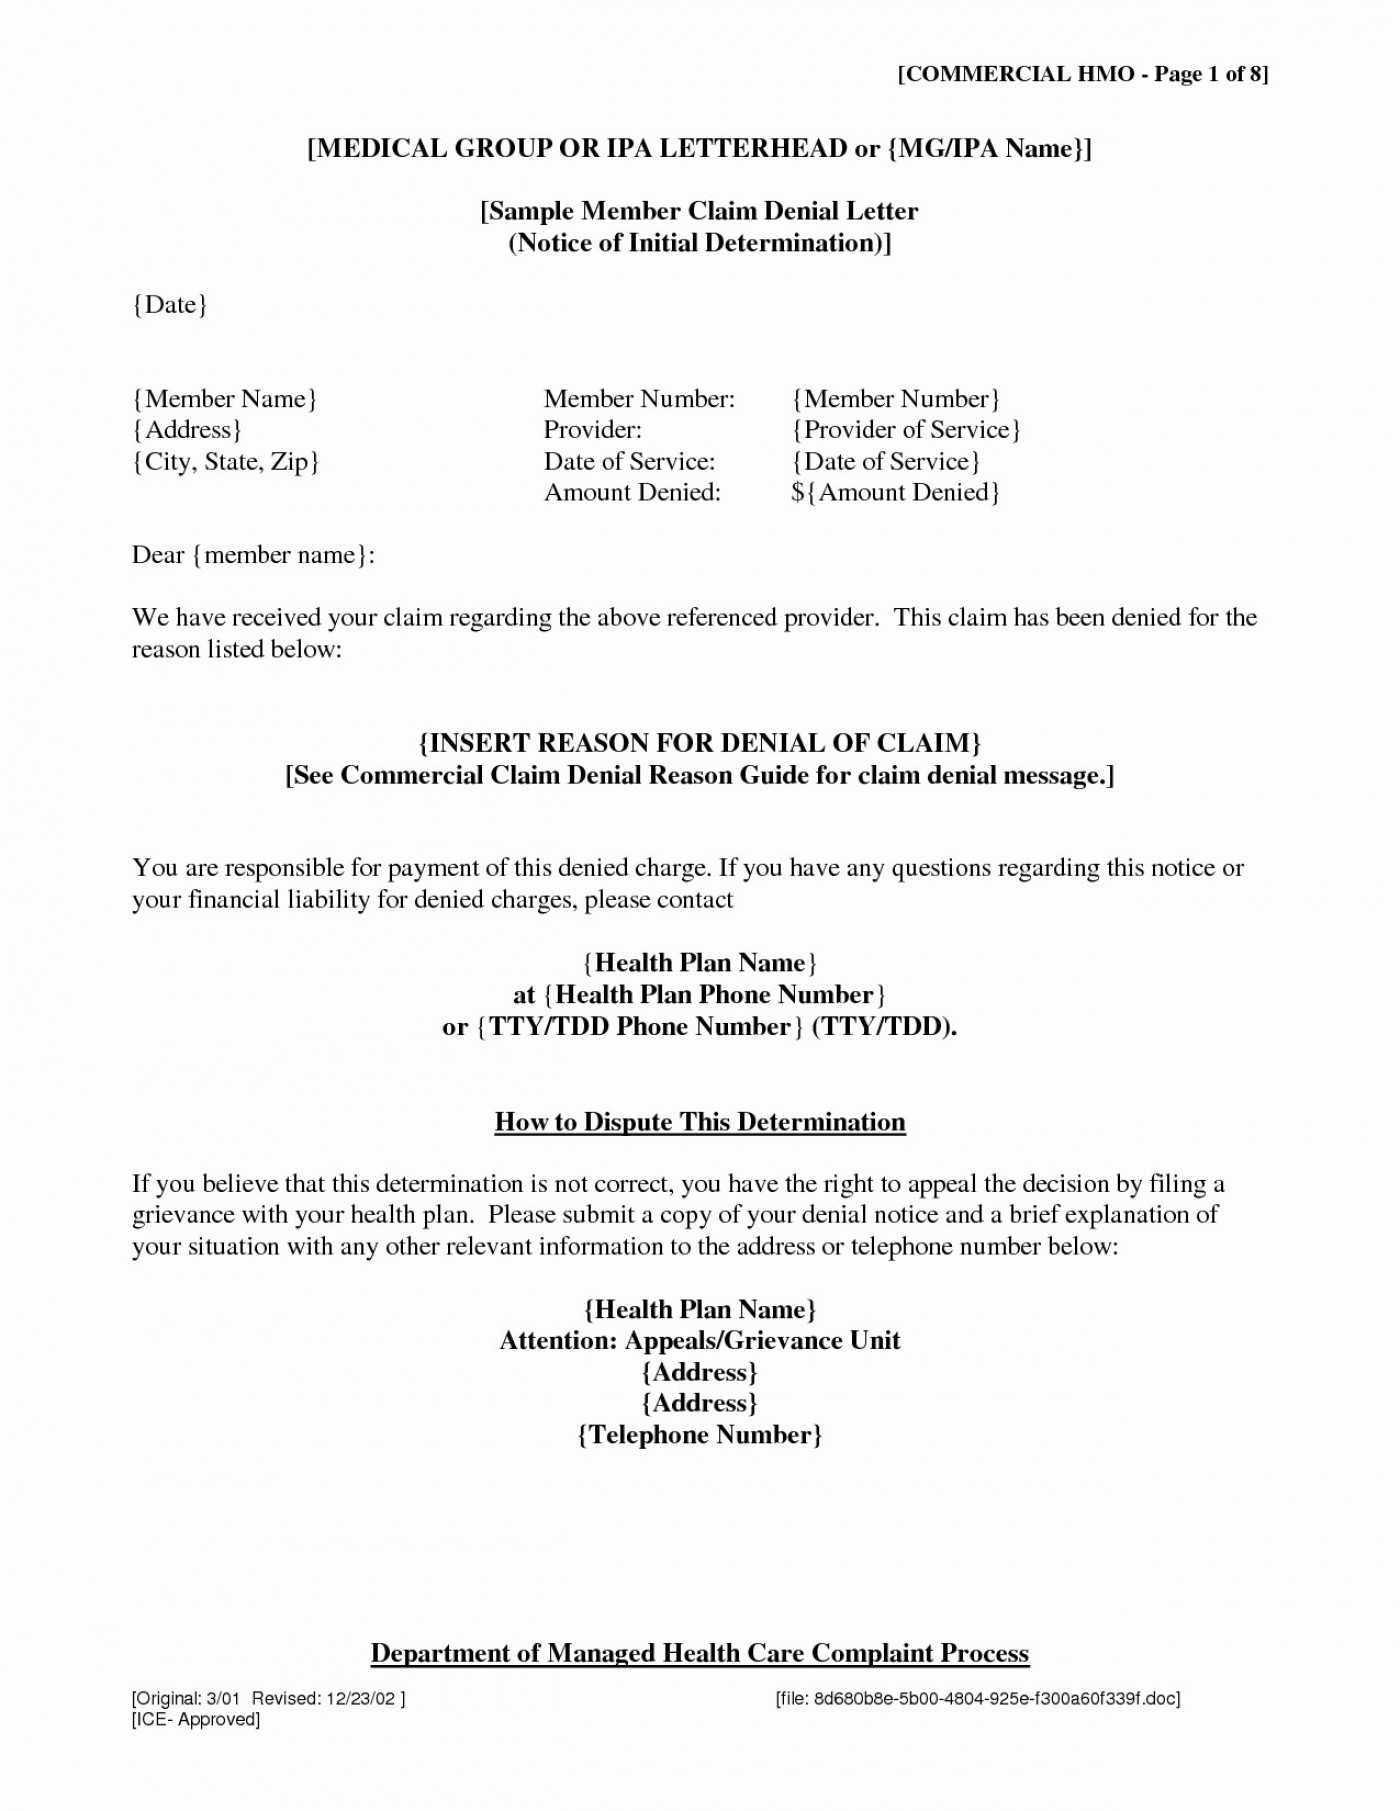 001 Insurance Denial Letter Template Excellent Ideas Appeal Inside Ppi Claim Letter Template For Credit Card